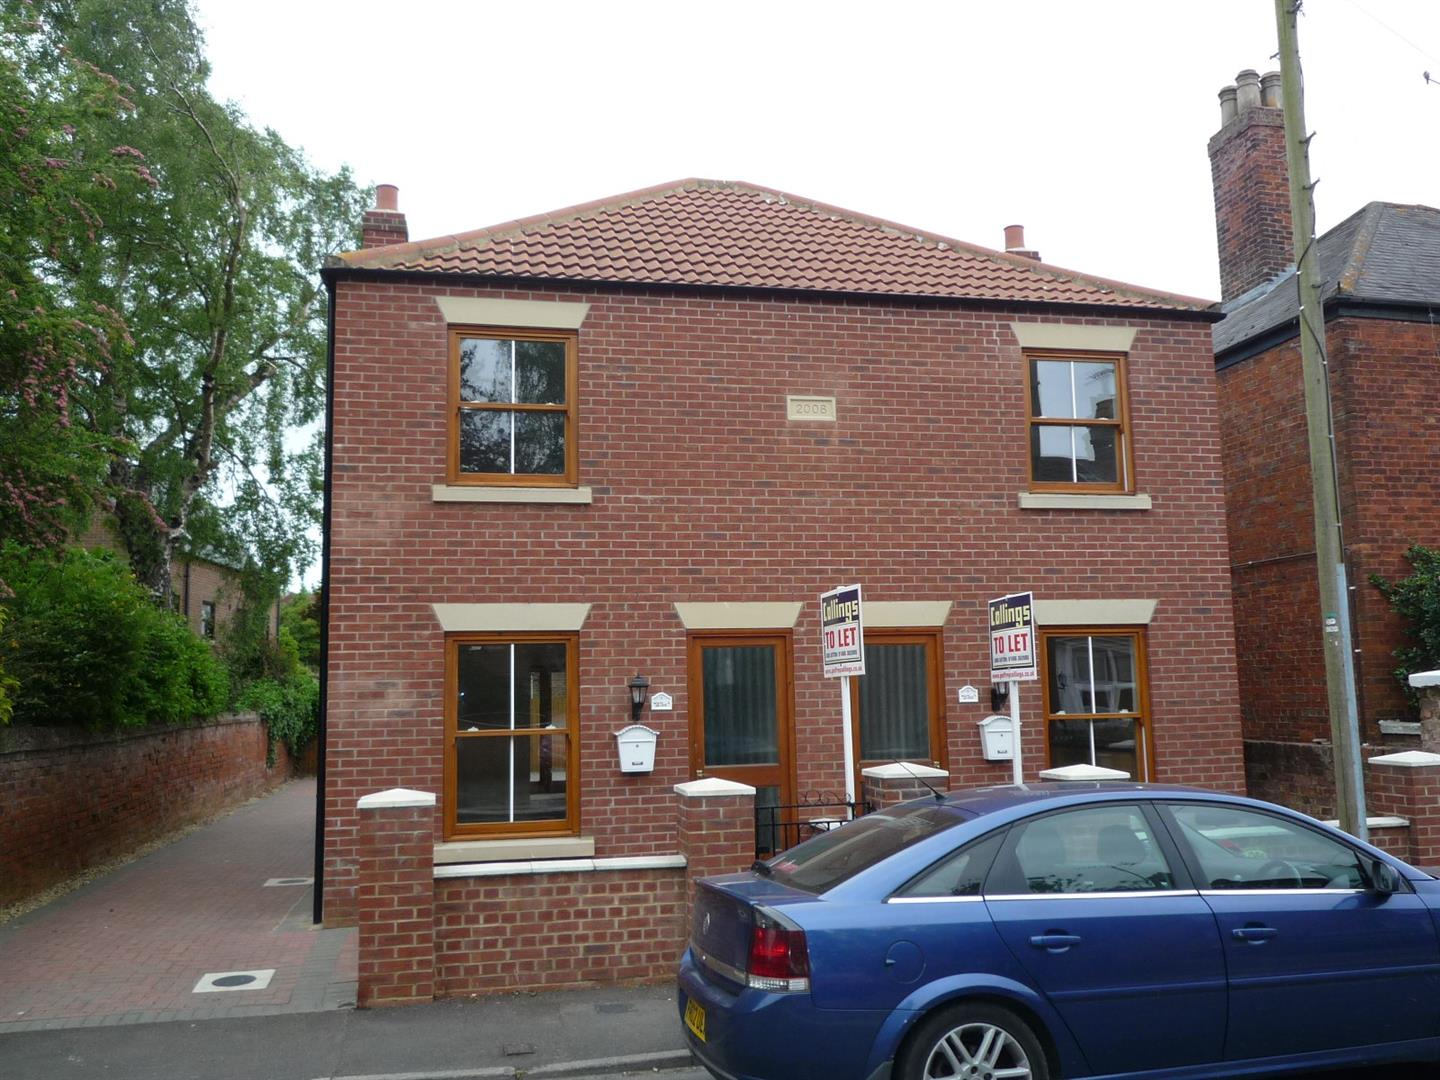 3 bed house to rent in Holbeach Spalding, PE12 7DR, PE12